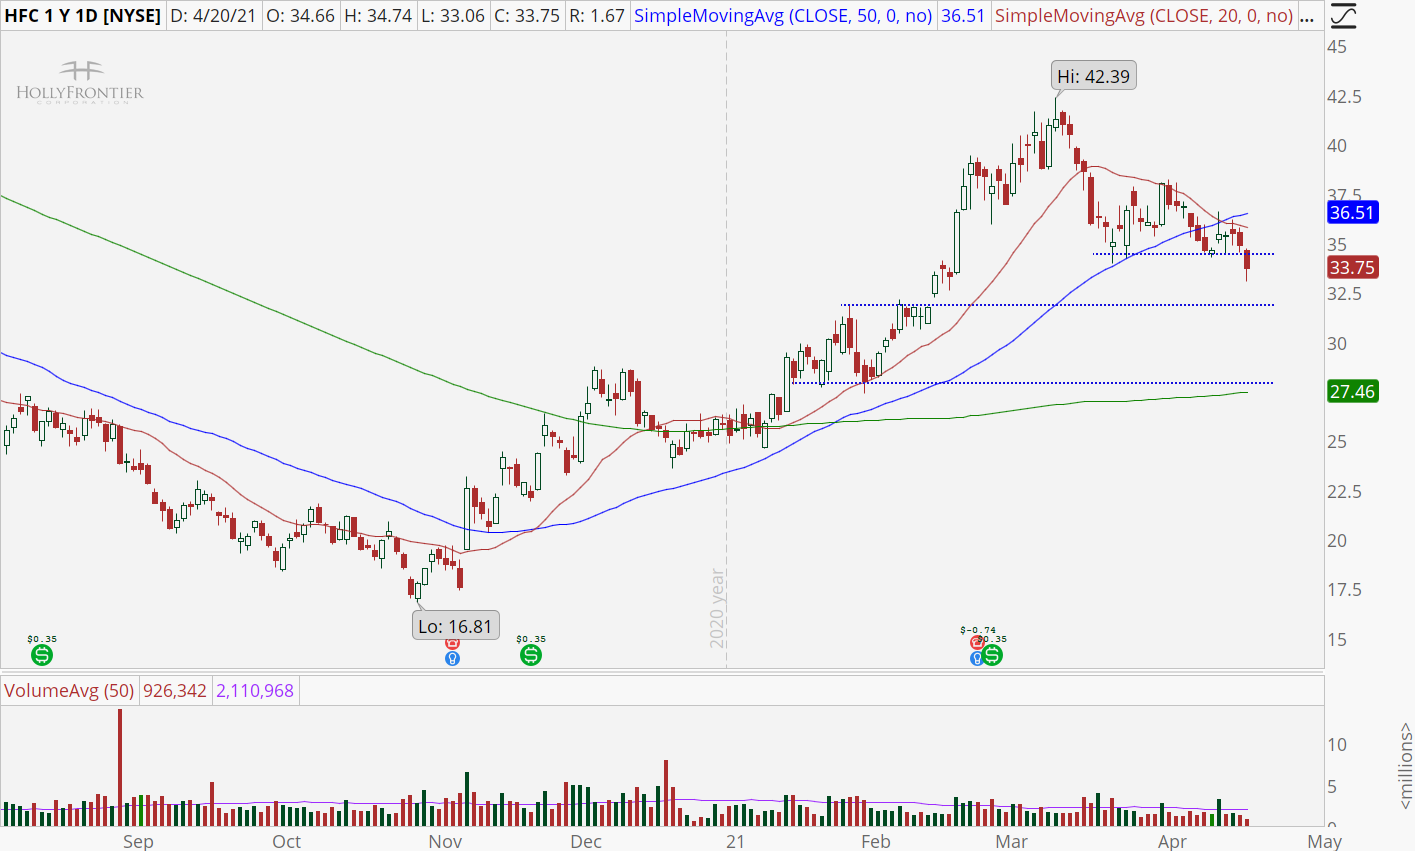 Holly Frontier Corp (HFC) chart with support break